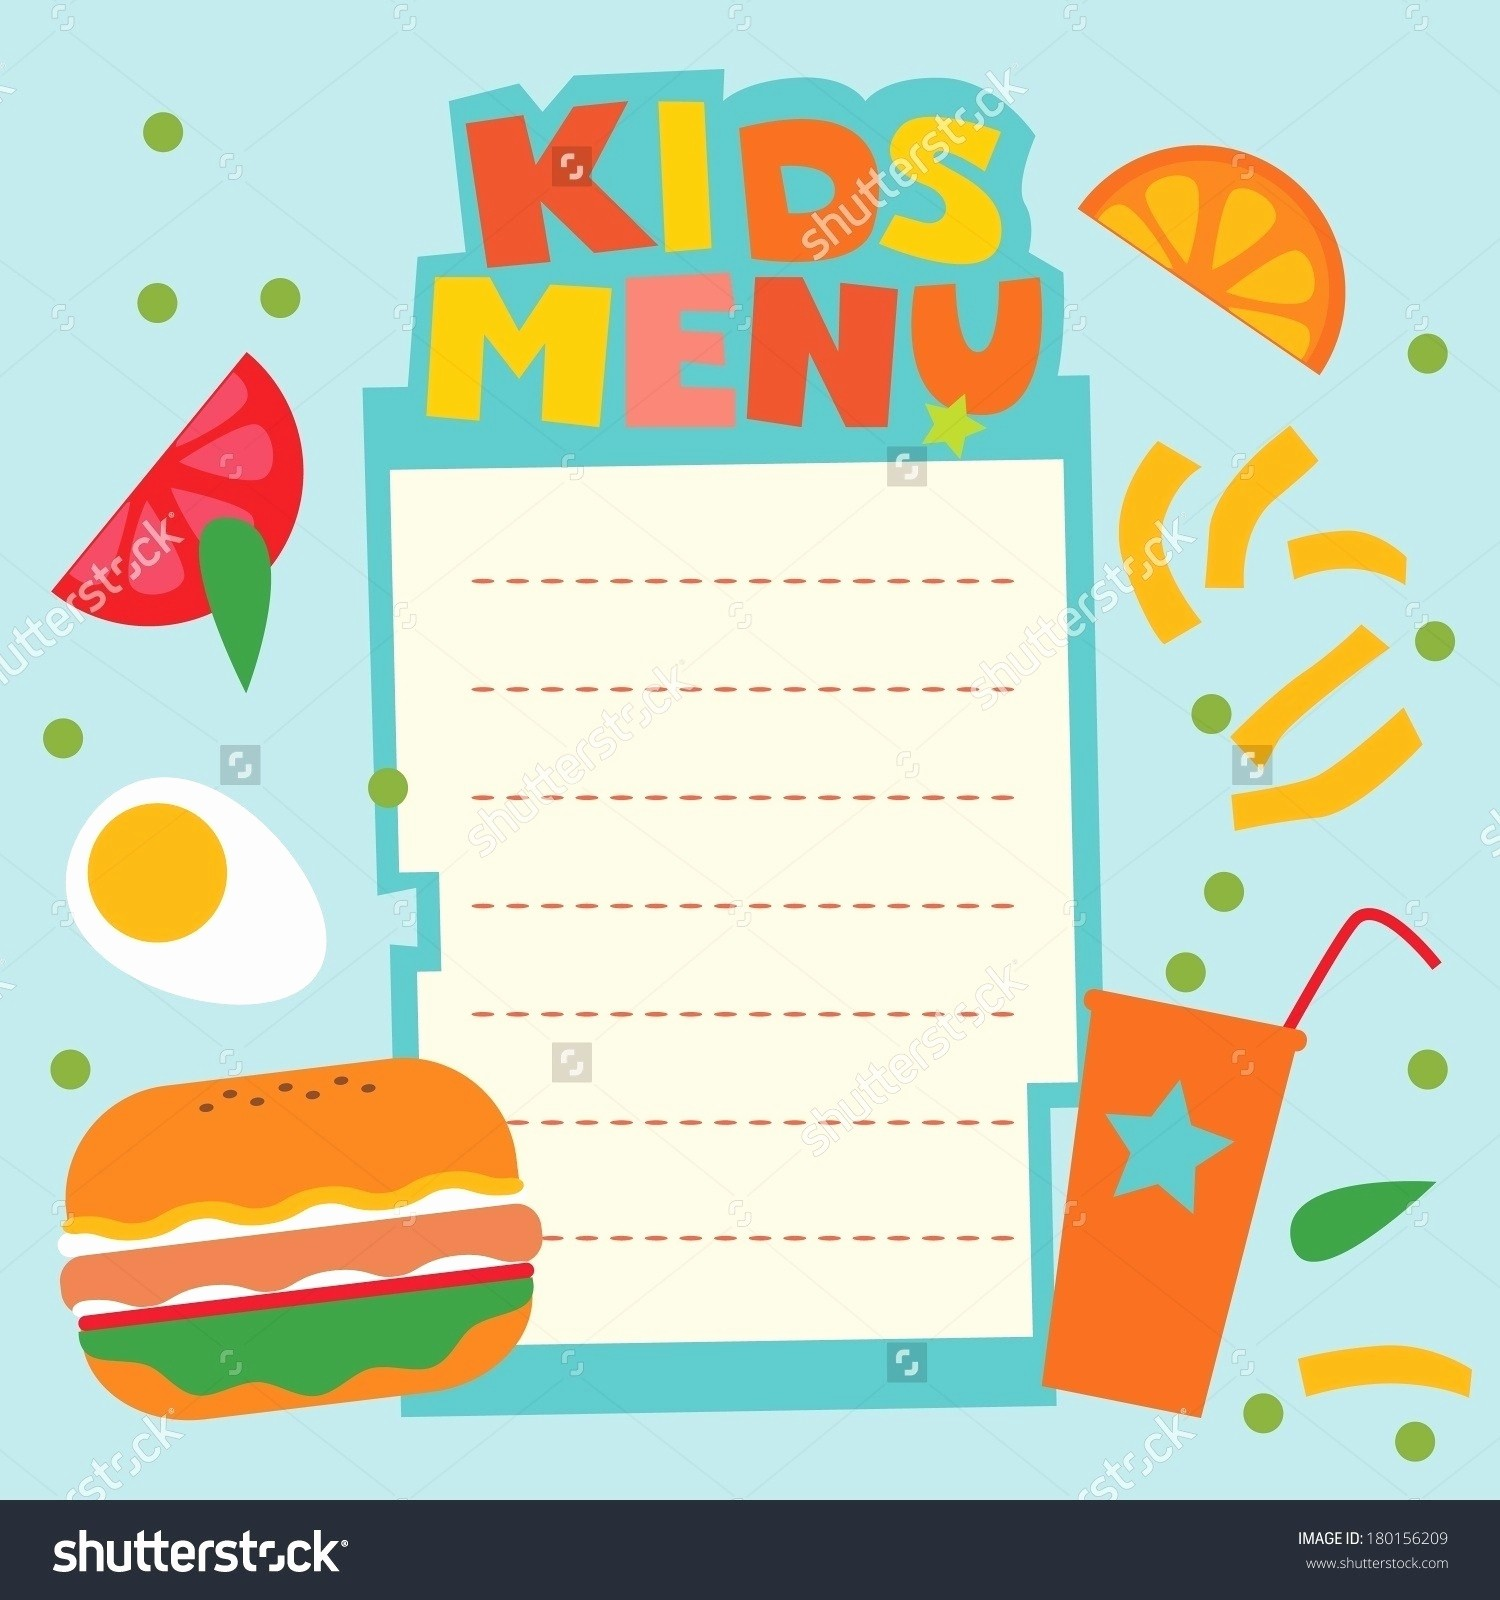 Free Printable Restaurant Menu Templates Luxury Blank Menu Template for Kids